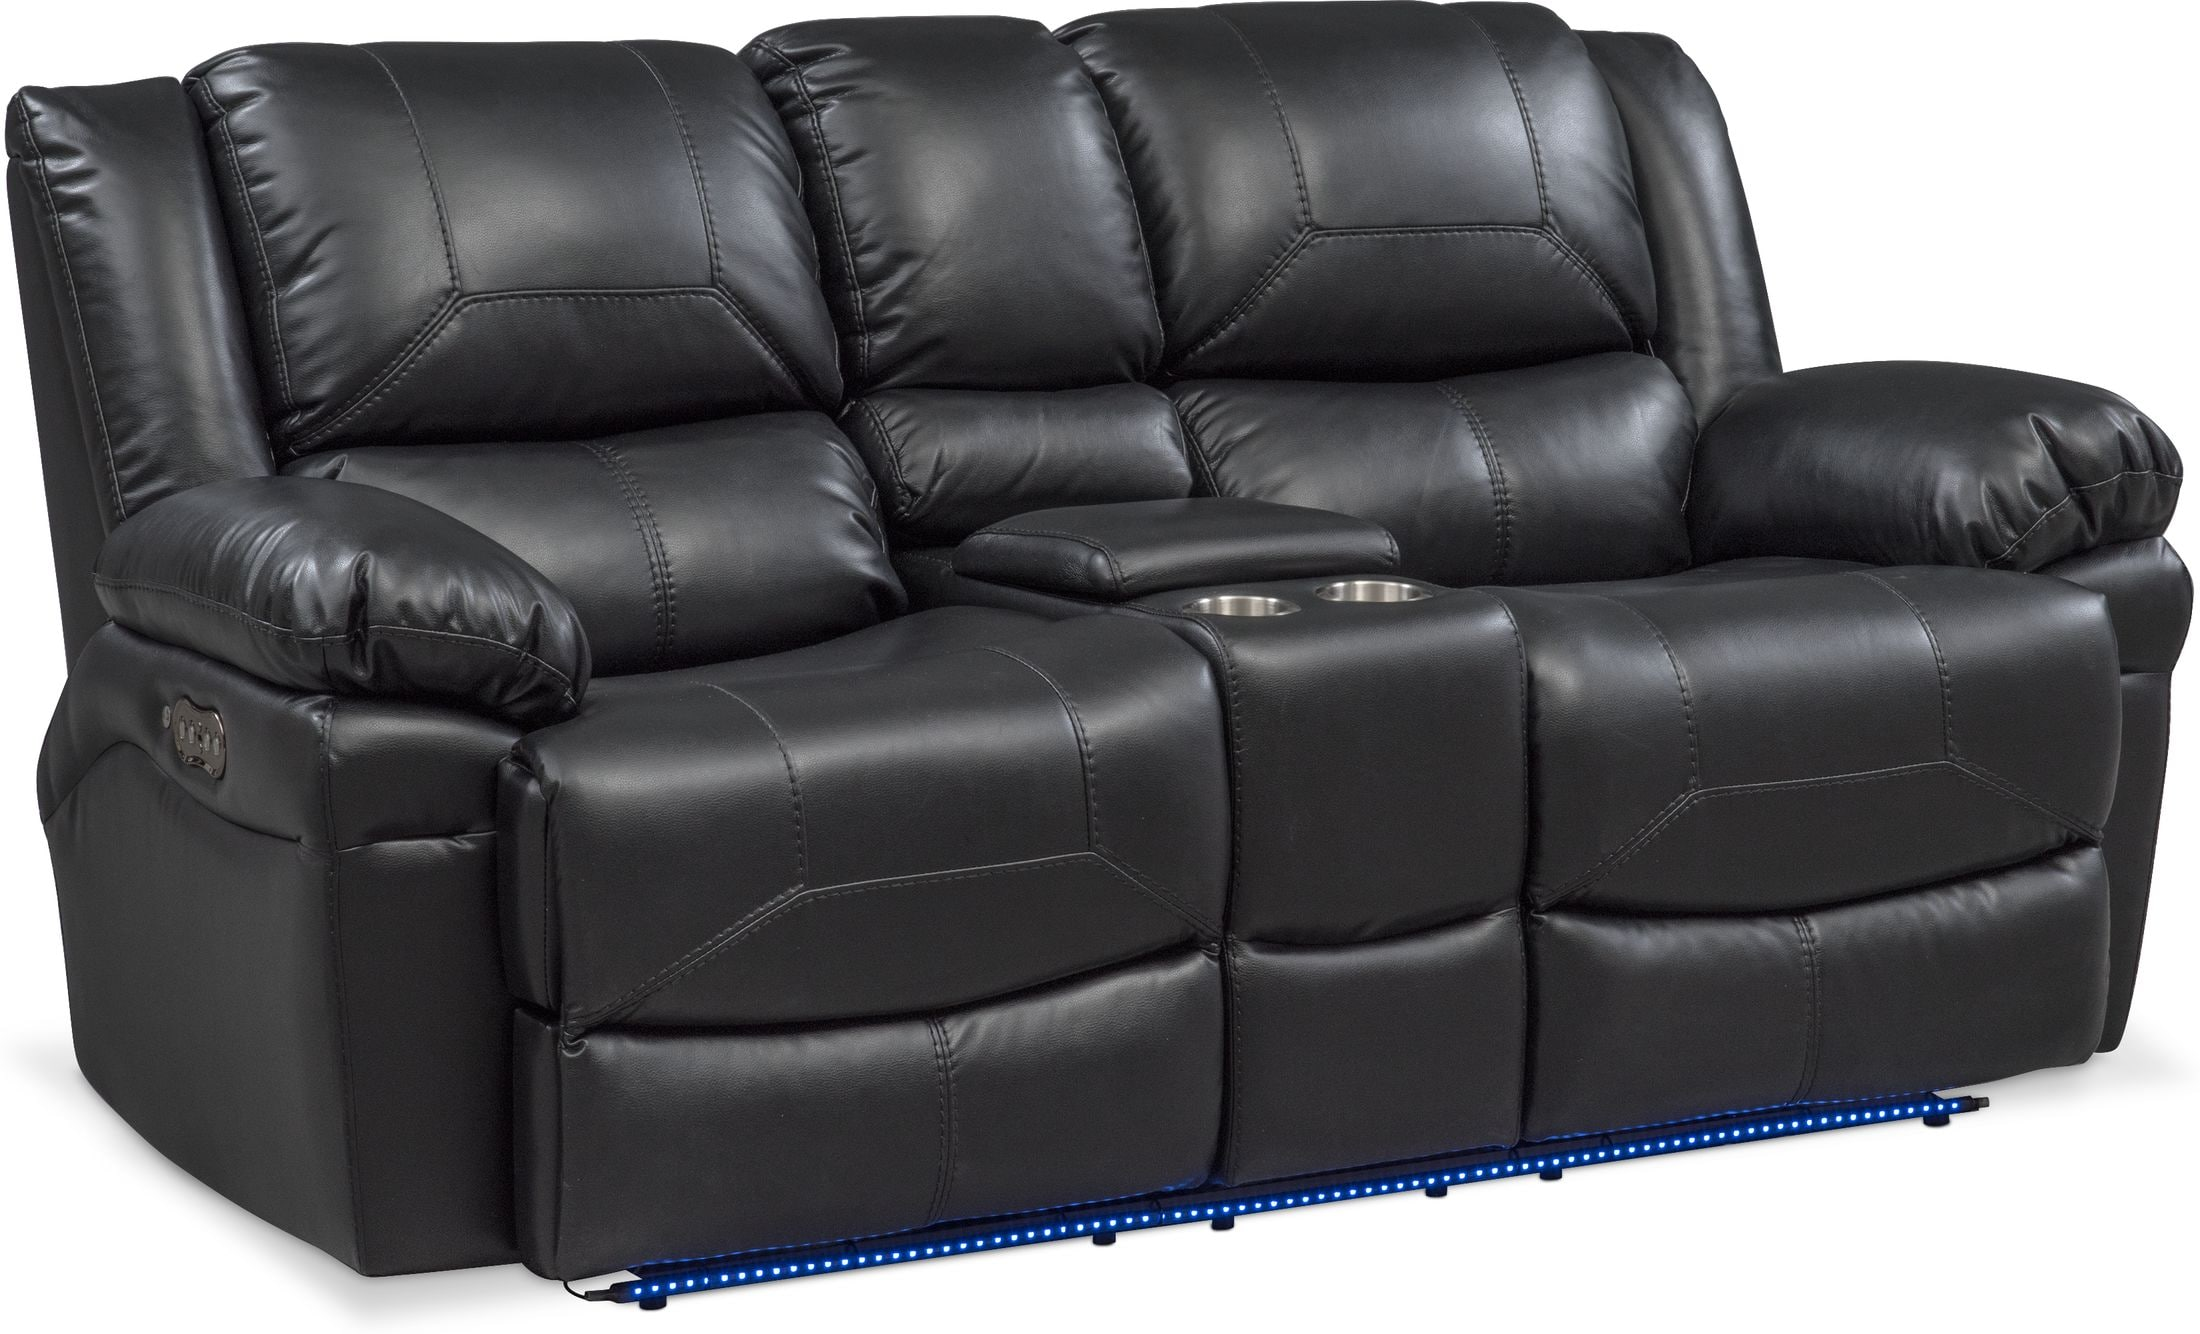 Living Room Furniture - Monza Dual-Power Reclining Loveseat